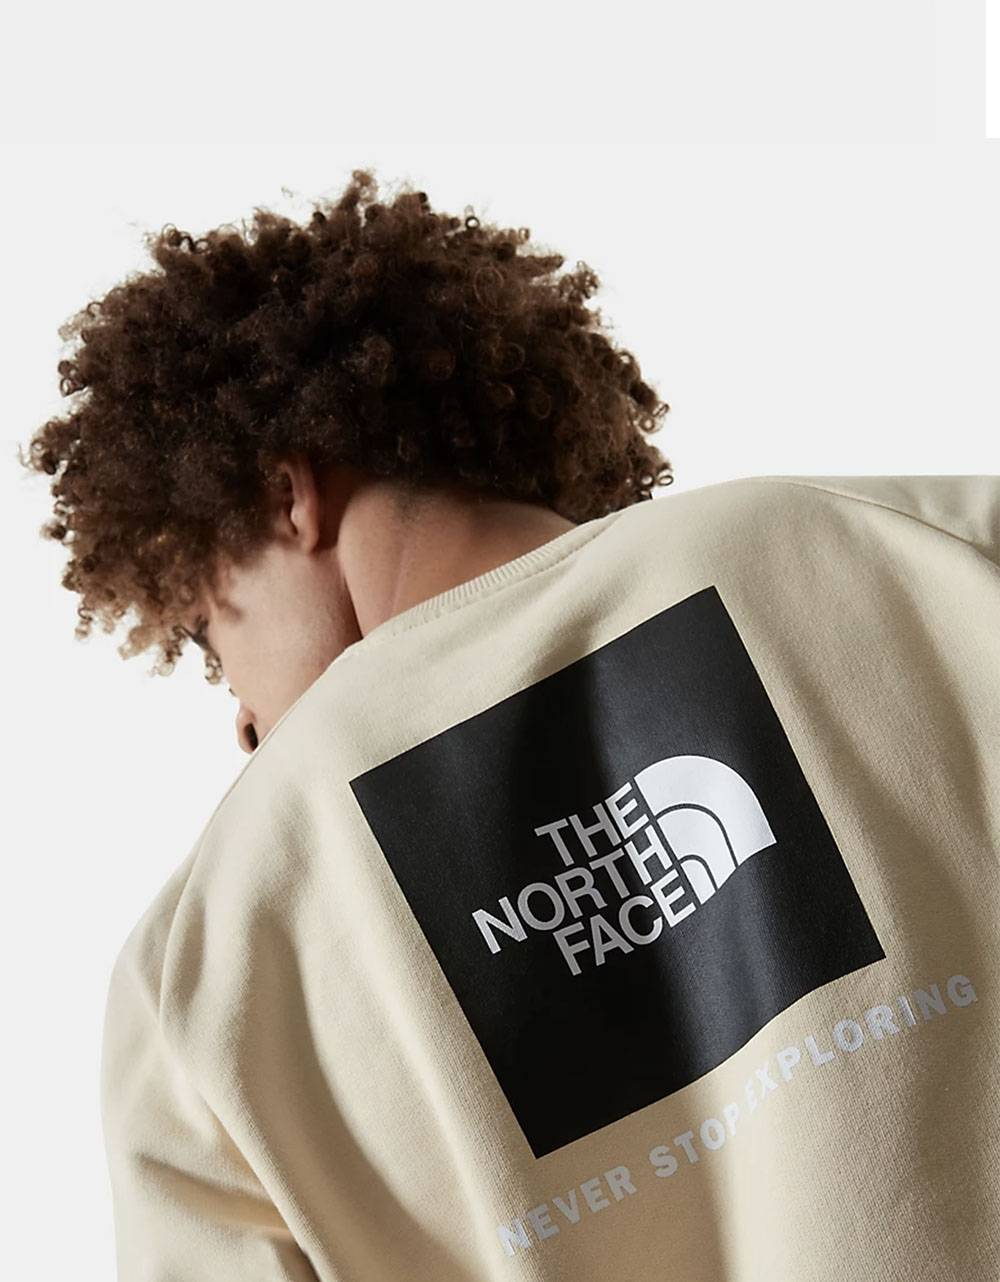 The North Face raglan red box new crewneck sweater - Bleached sand THE NORTH FACE Sweater 75,41 €